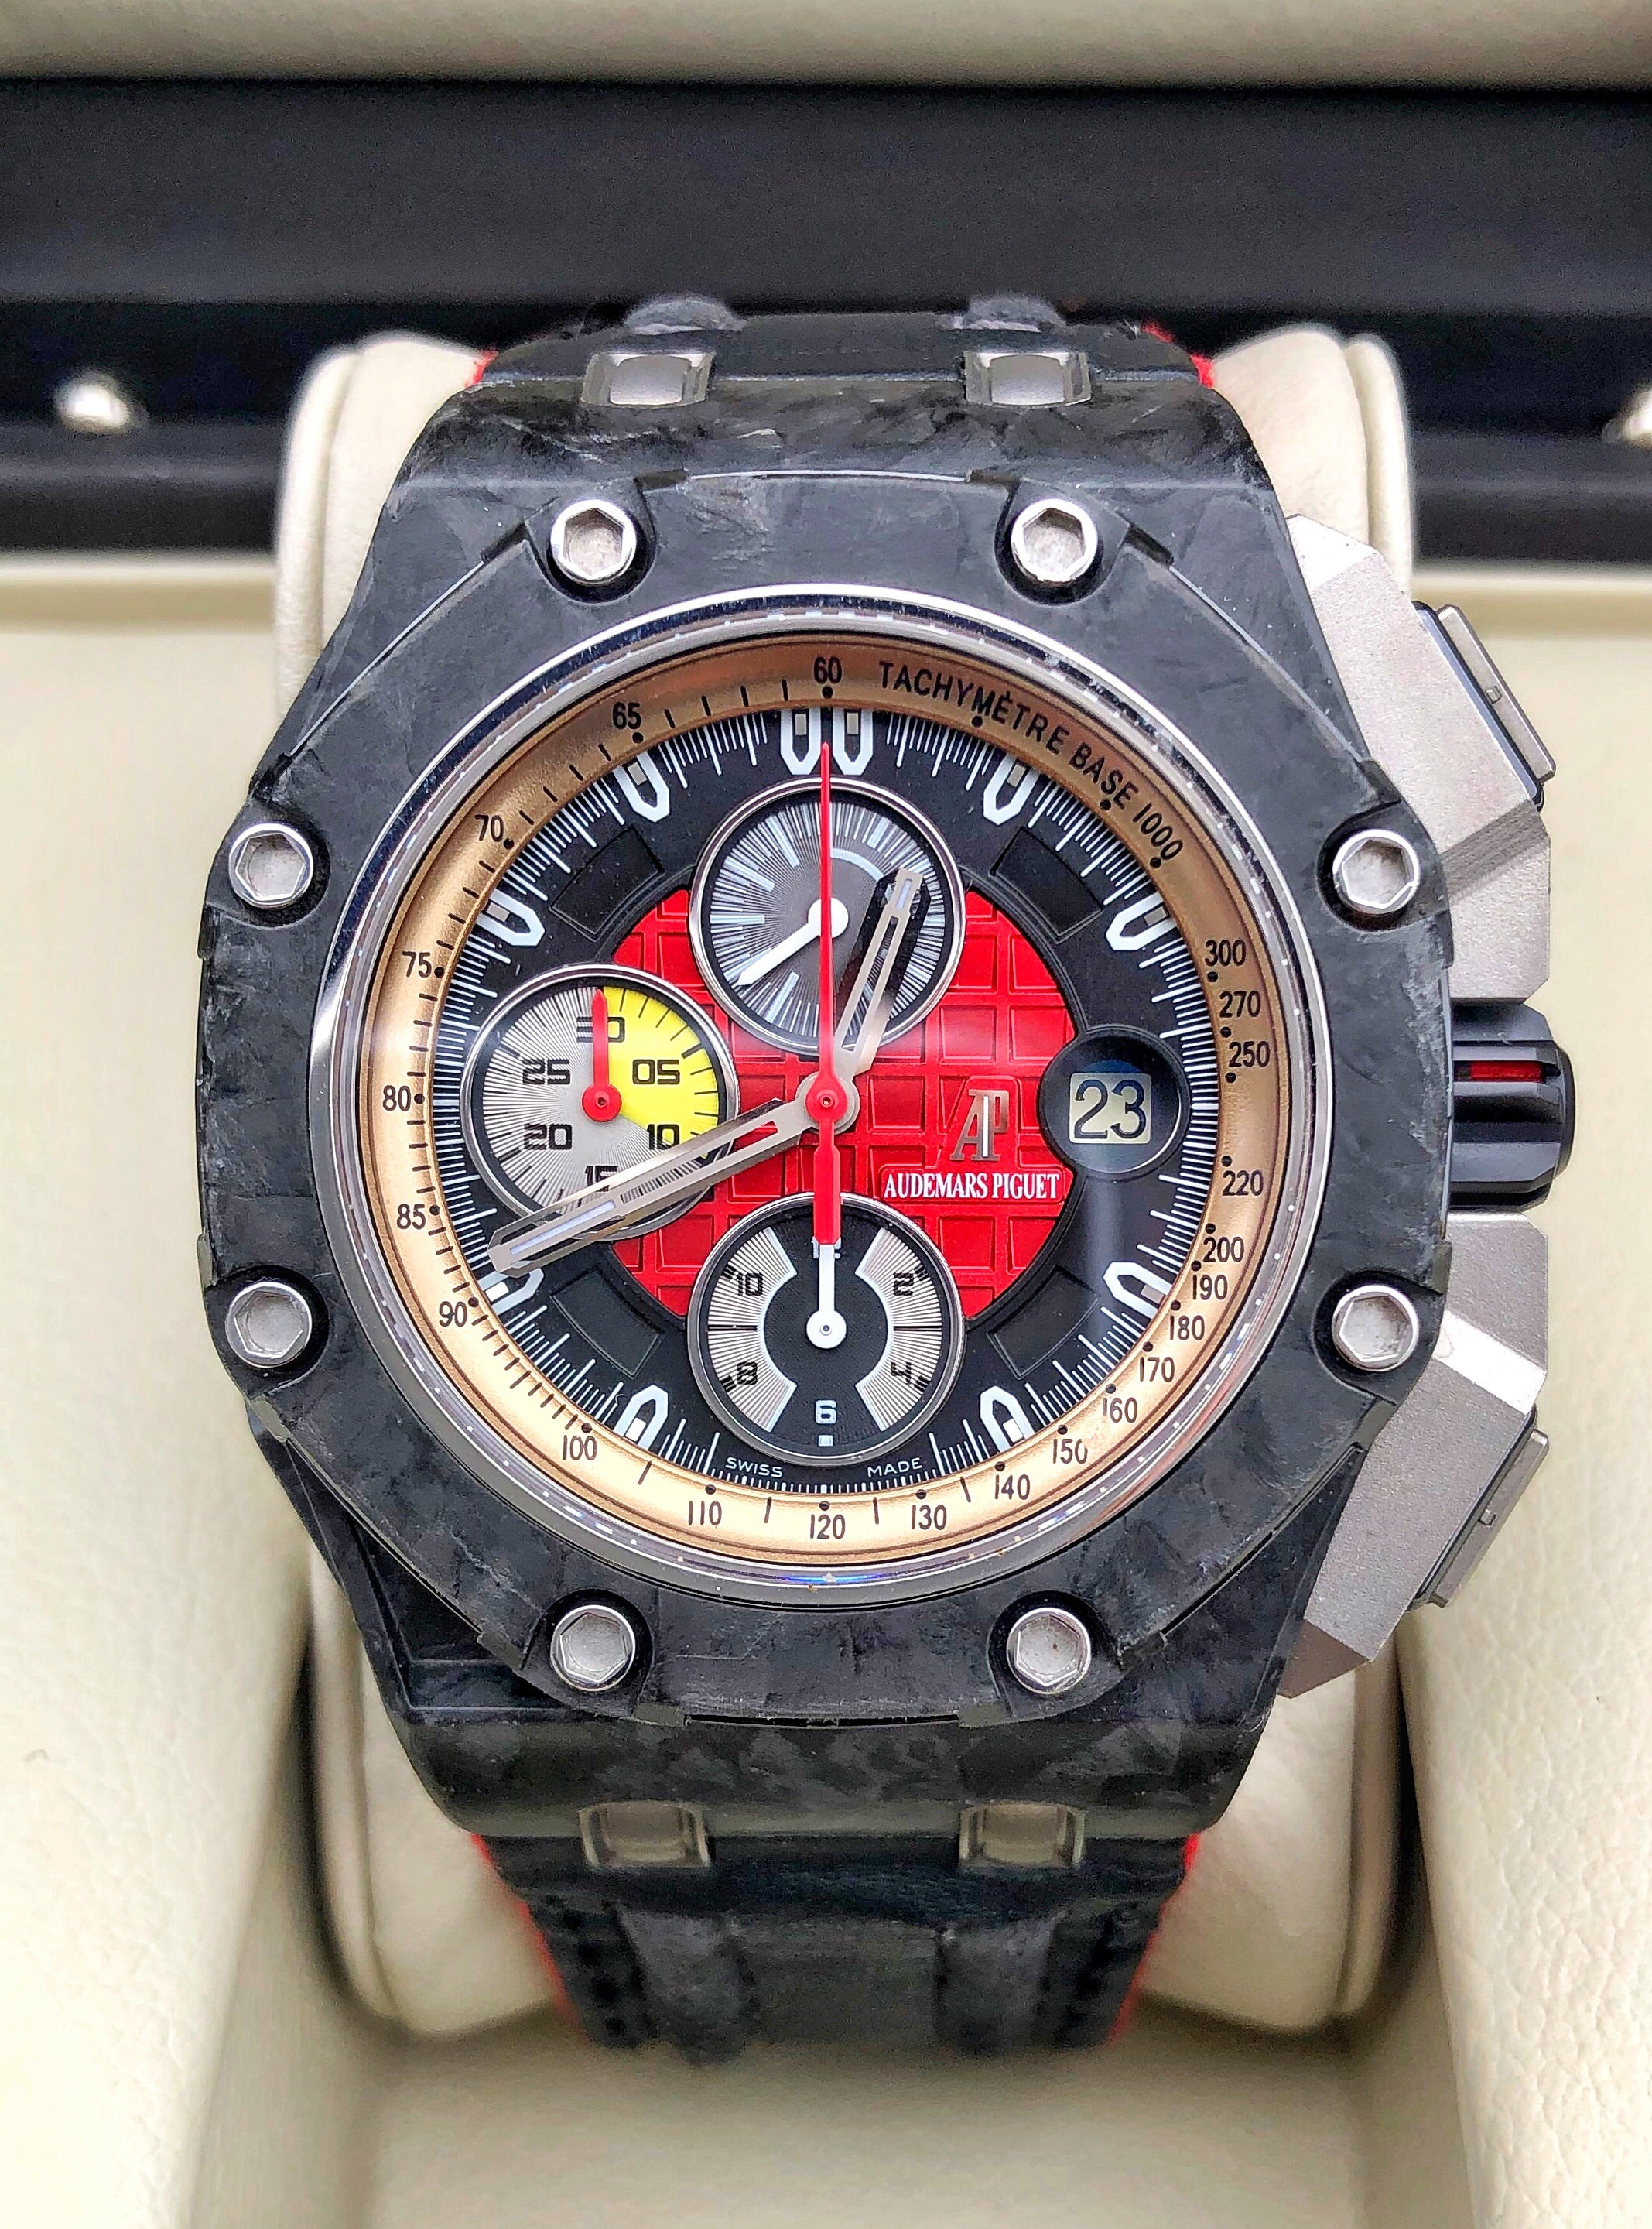 Audemars Piguet Royal Oak Offshore Grand Prix Knight Watch Collection